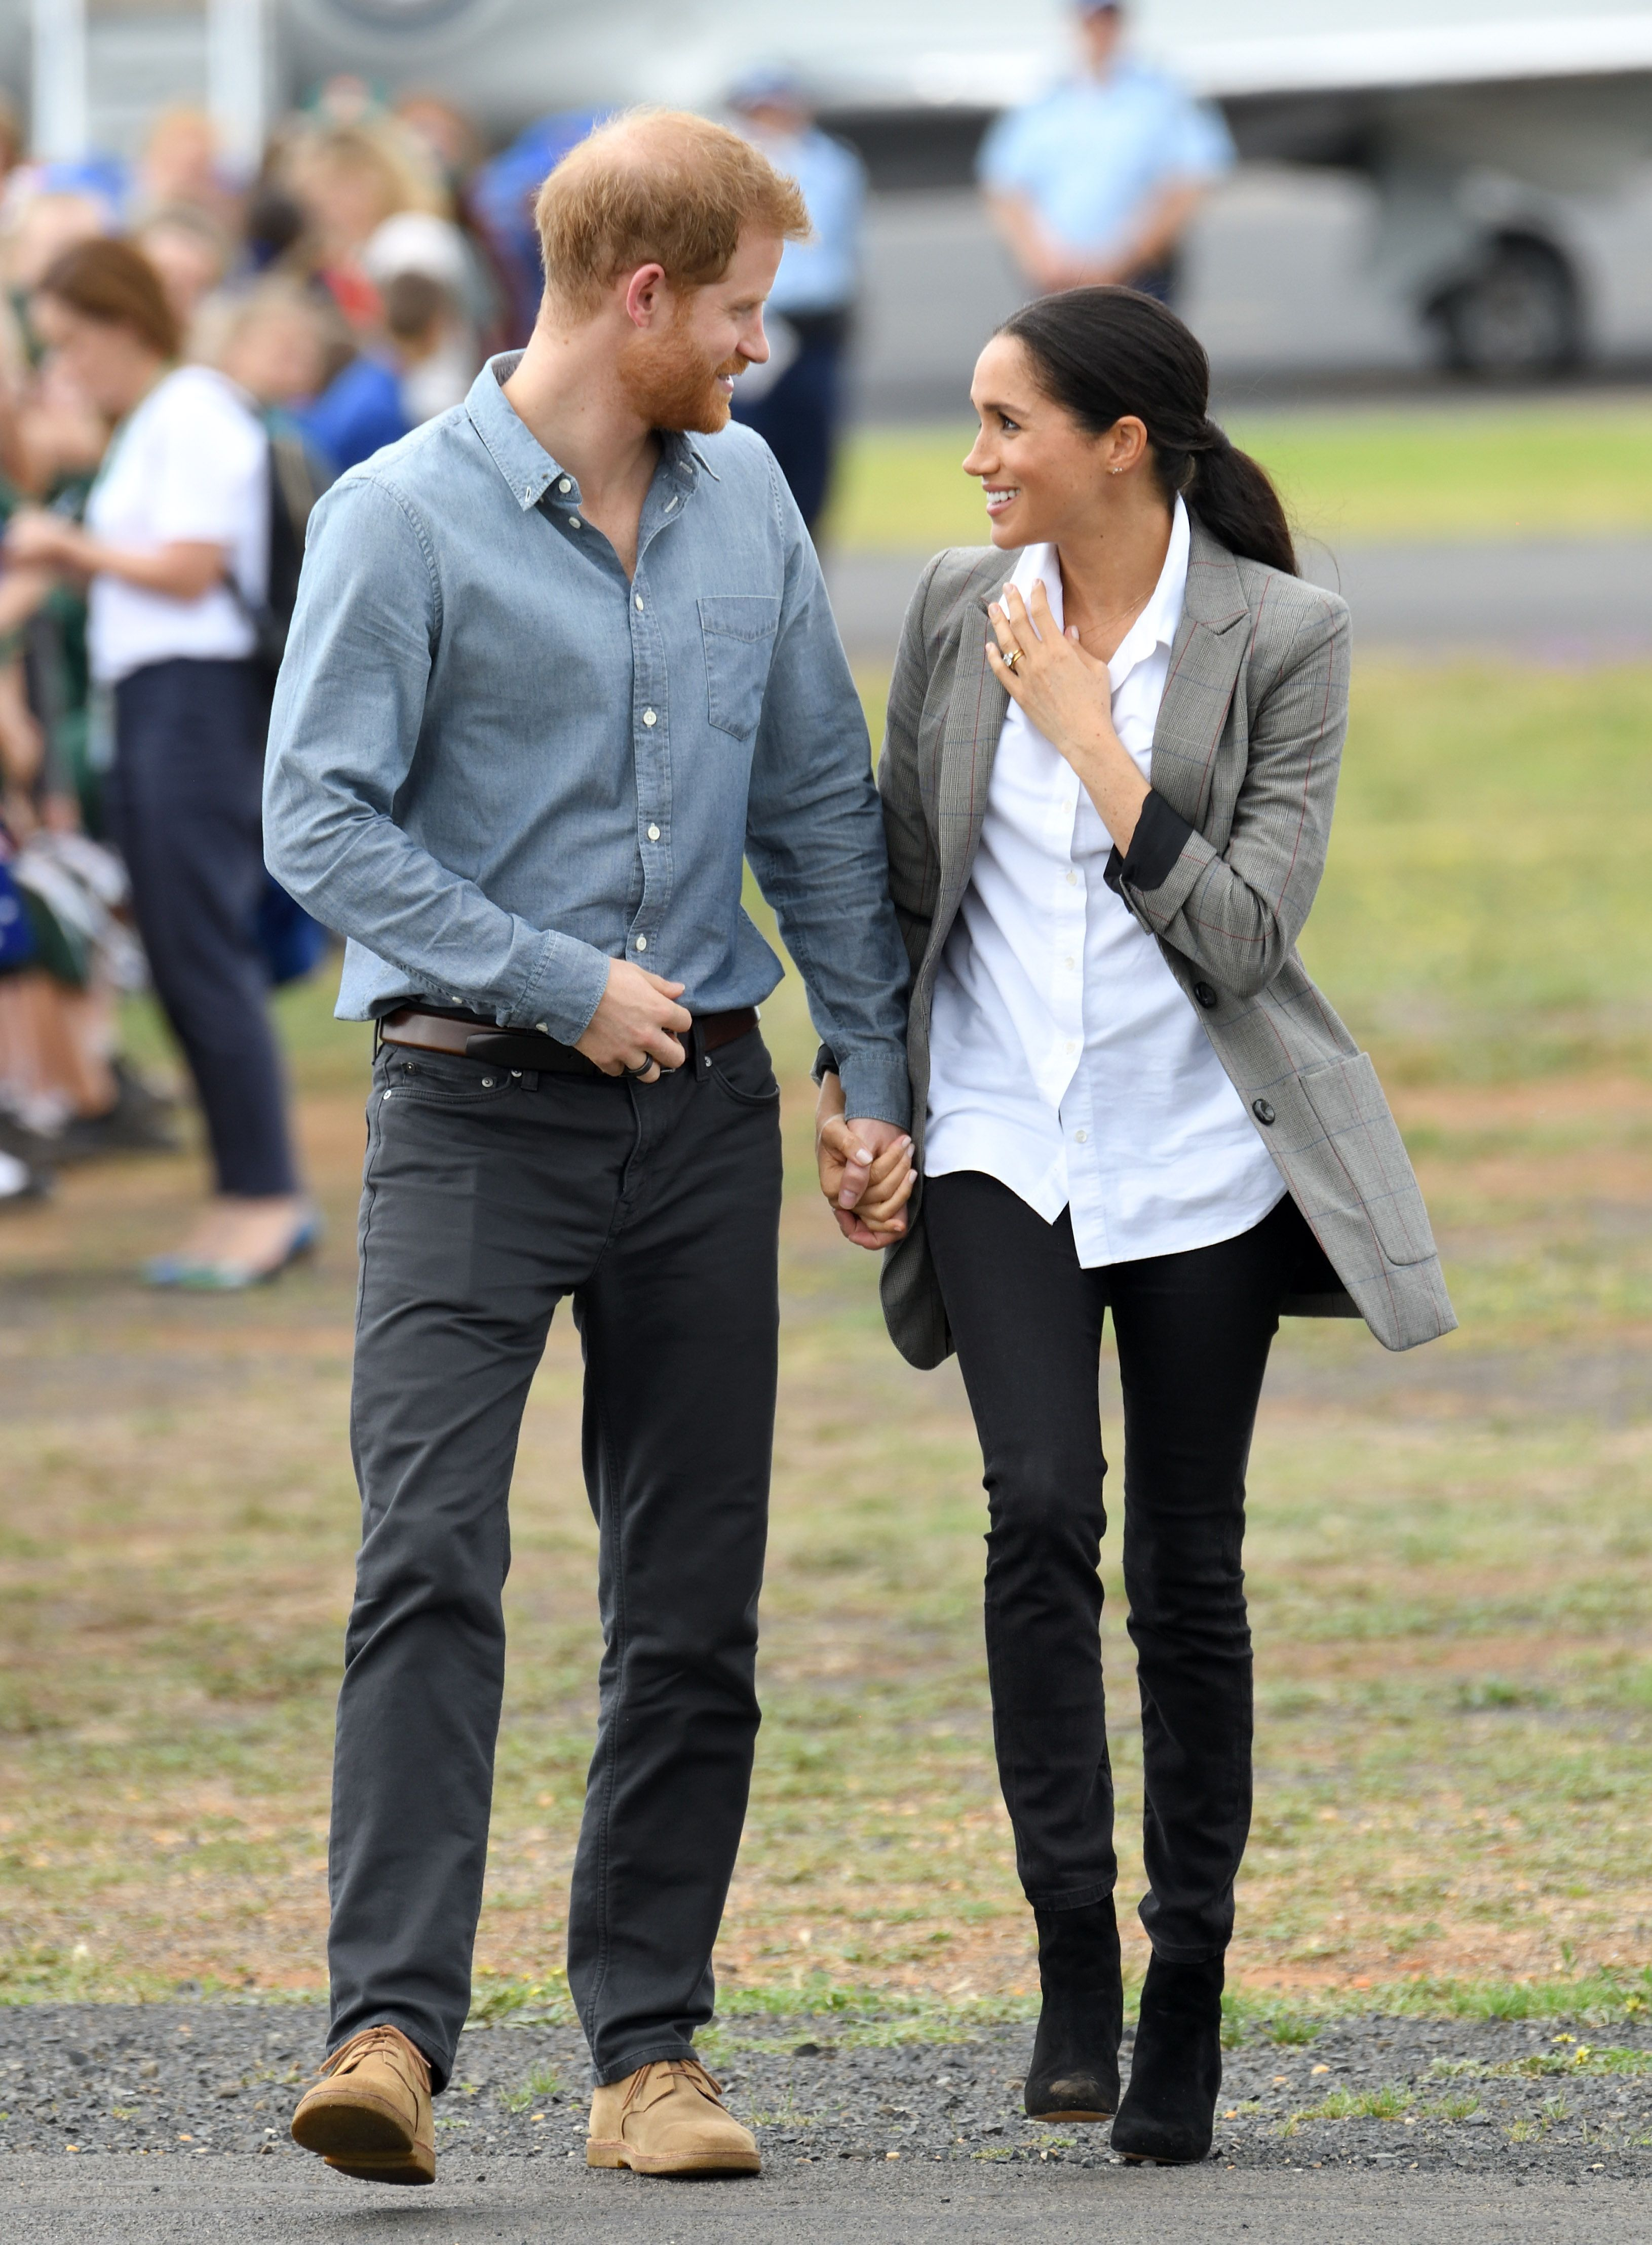 Meghan Markle Rocked Yet Another Pair Of Comfy Sneaks On The Royal Tour pics